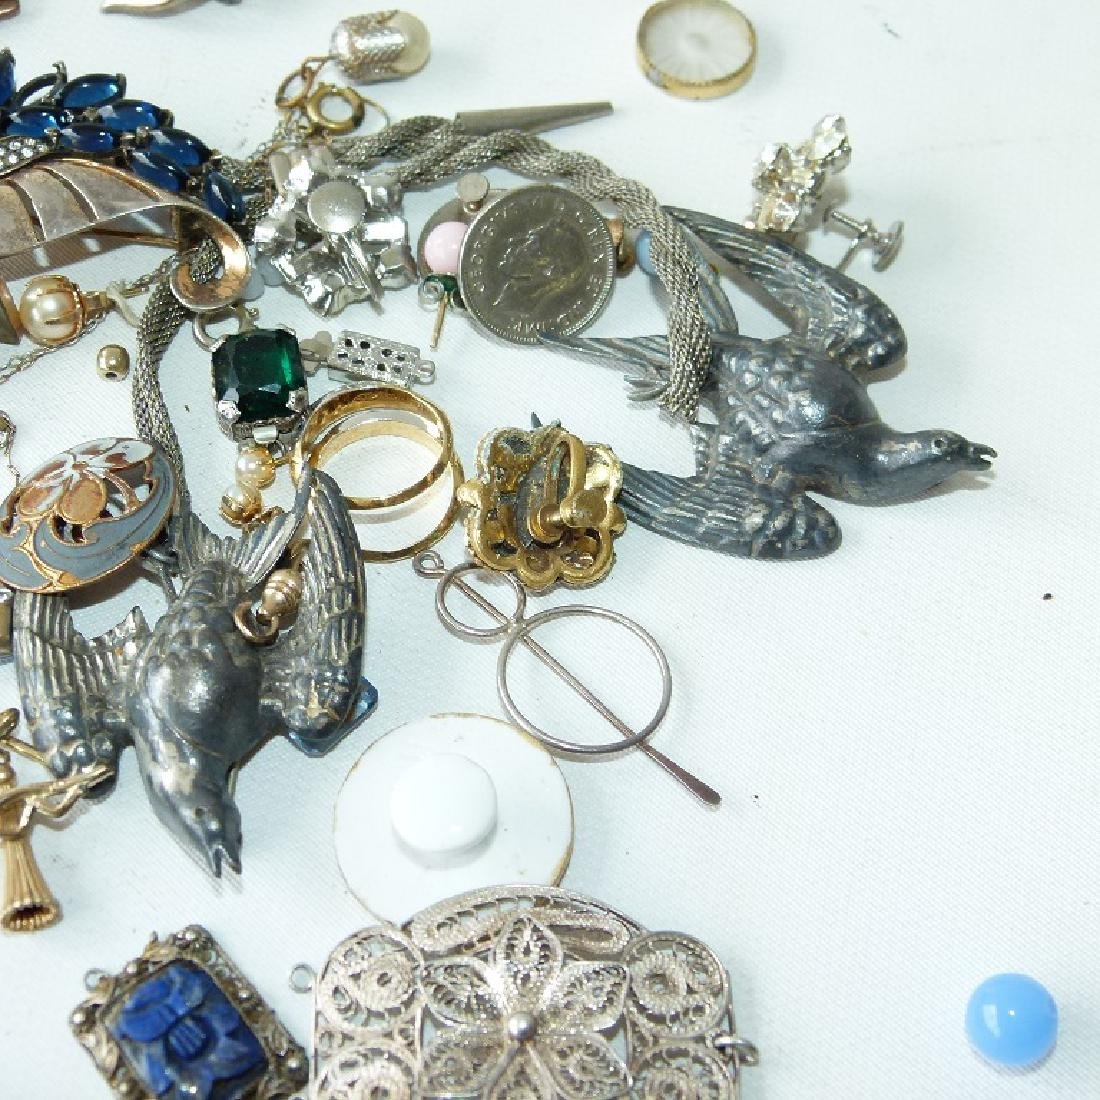 LOT ASSORTED VICTORIAN RINGS/FINDINGS 19/20TH C. - 4